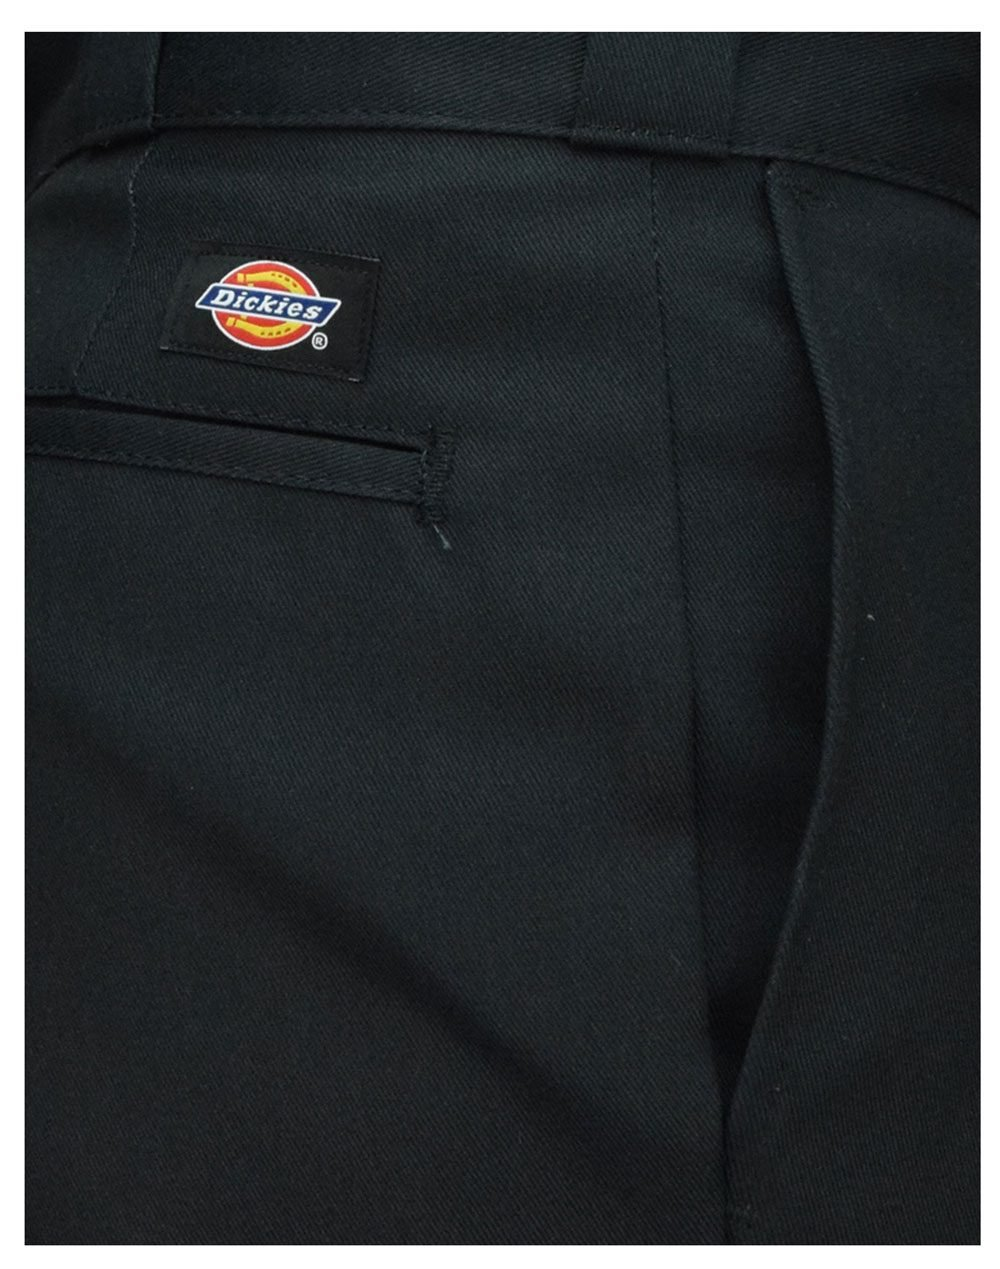 Dickies Vancleve Chino Pant (01 210176) Black